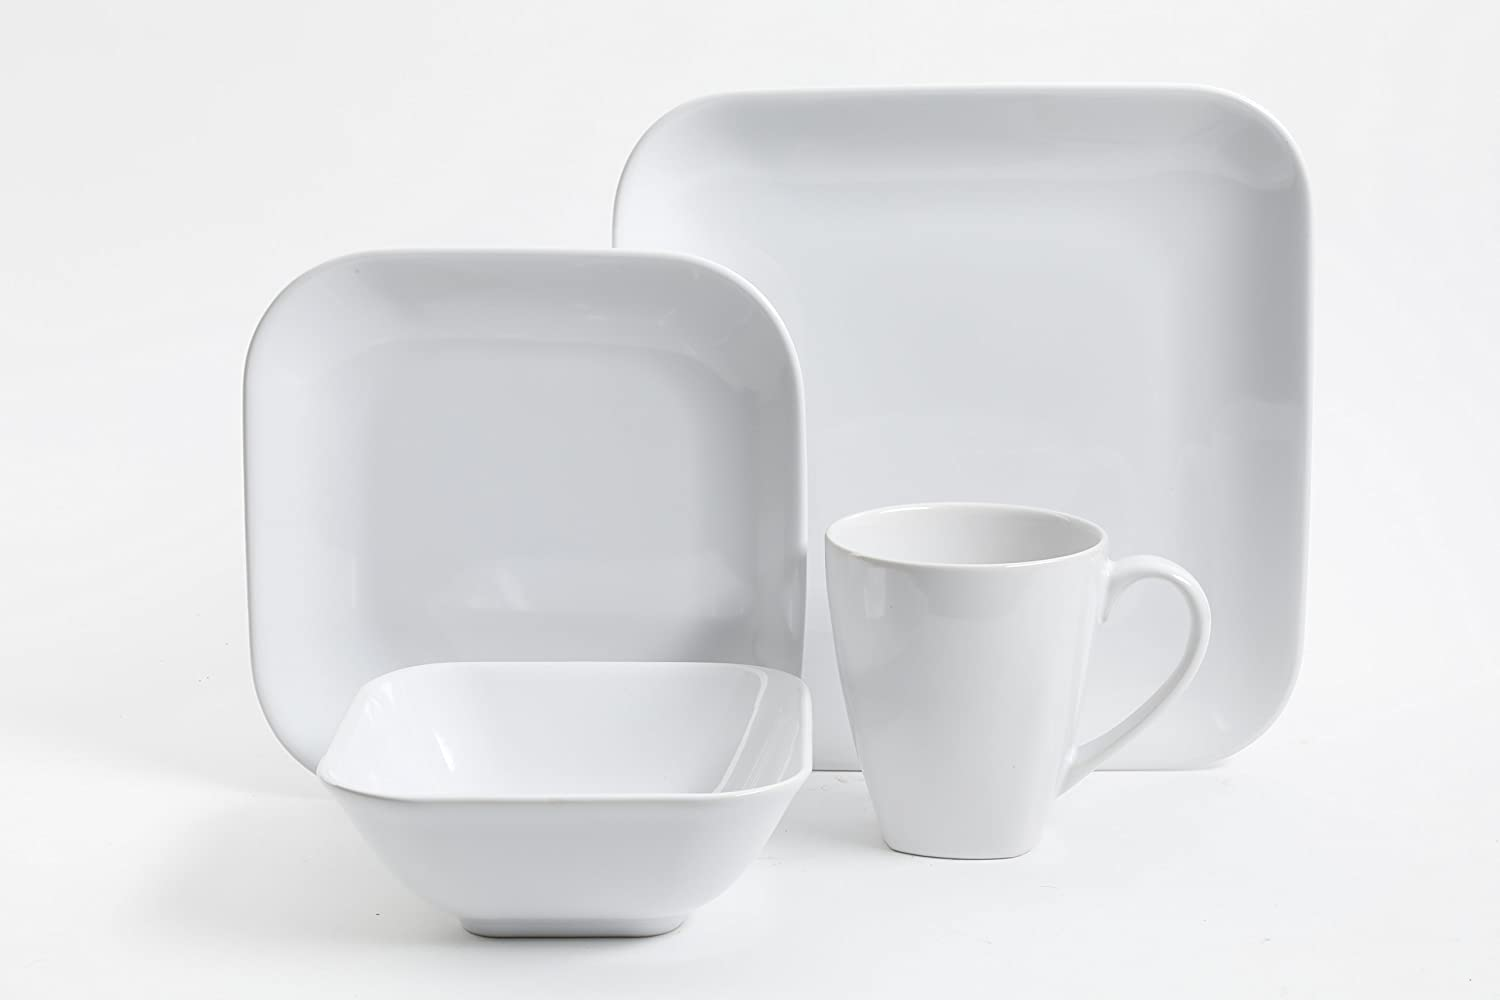 Gibson Home 99842.16rm Dance 16 Pc Dinnerware Set Soft Square White Stoneware